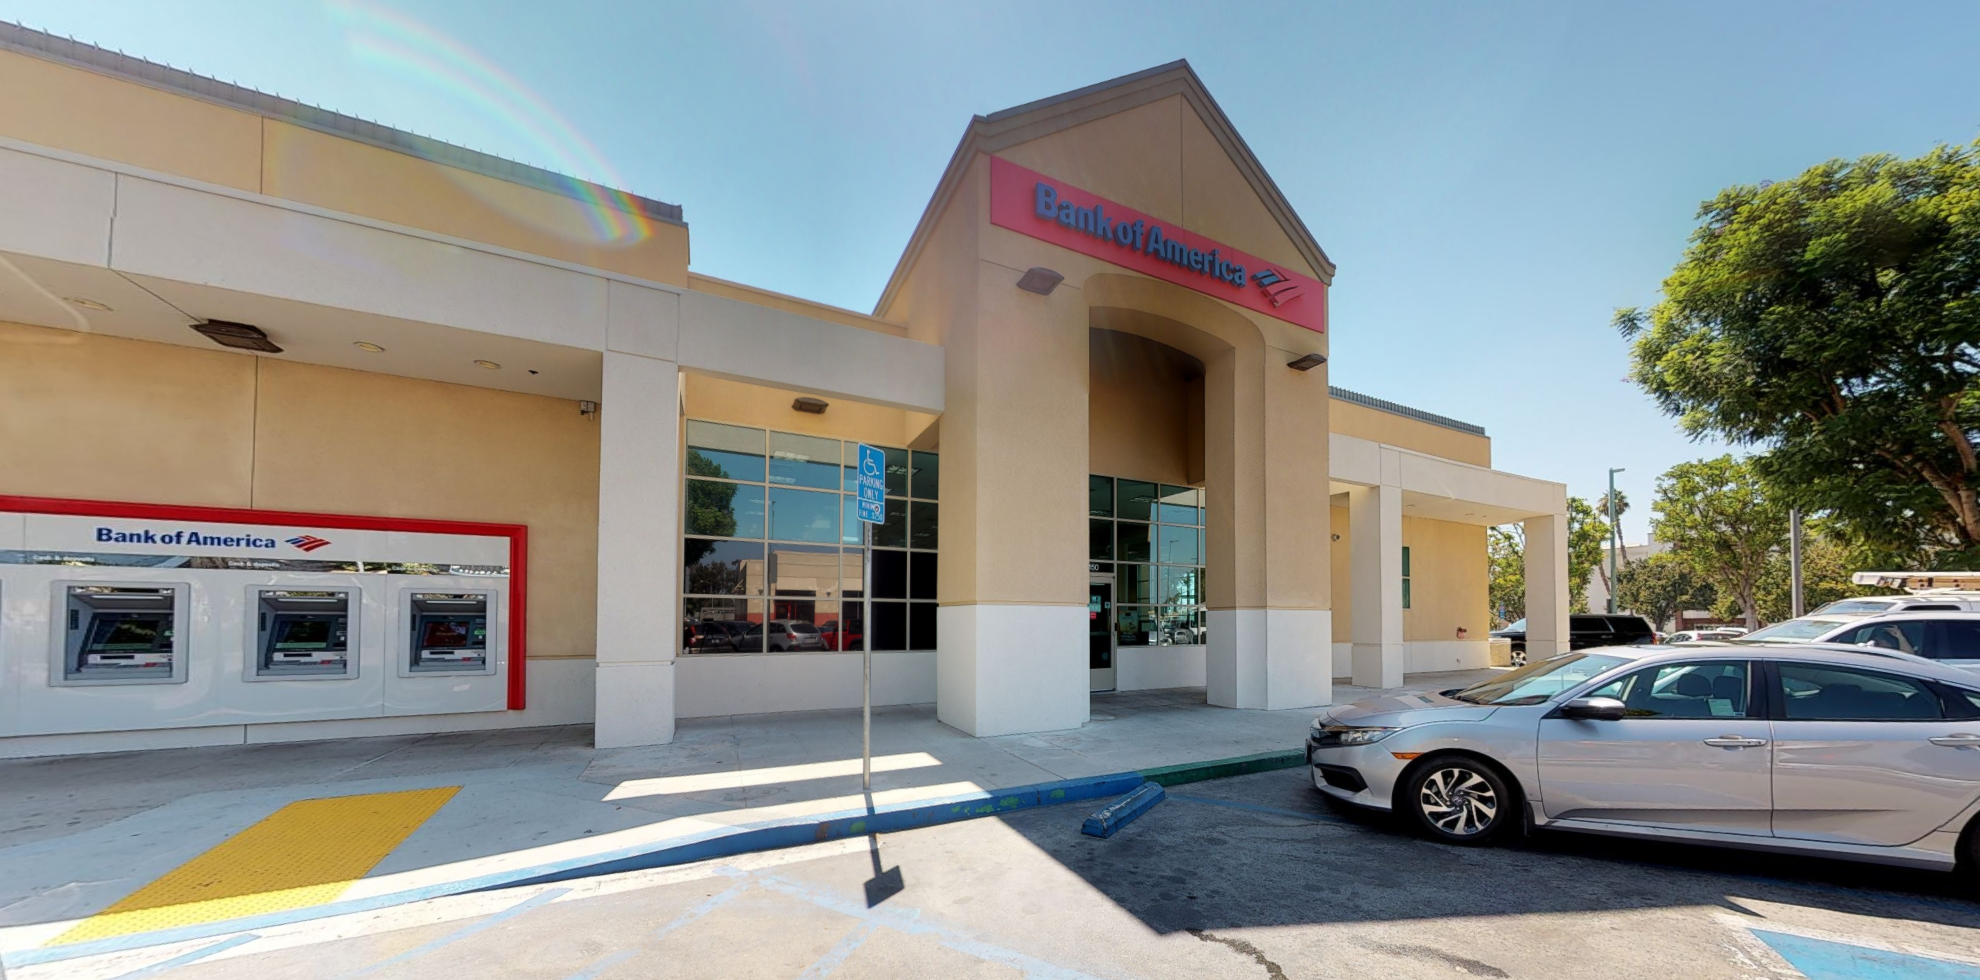 Bank of America financial center with drive-thru ATM | 150 S California Ave, West Covina, CA 91790